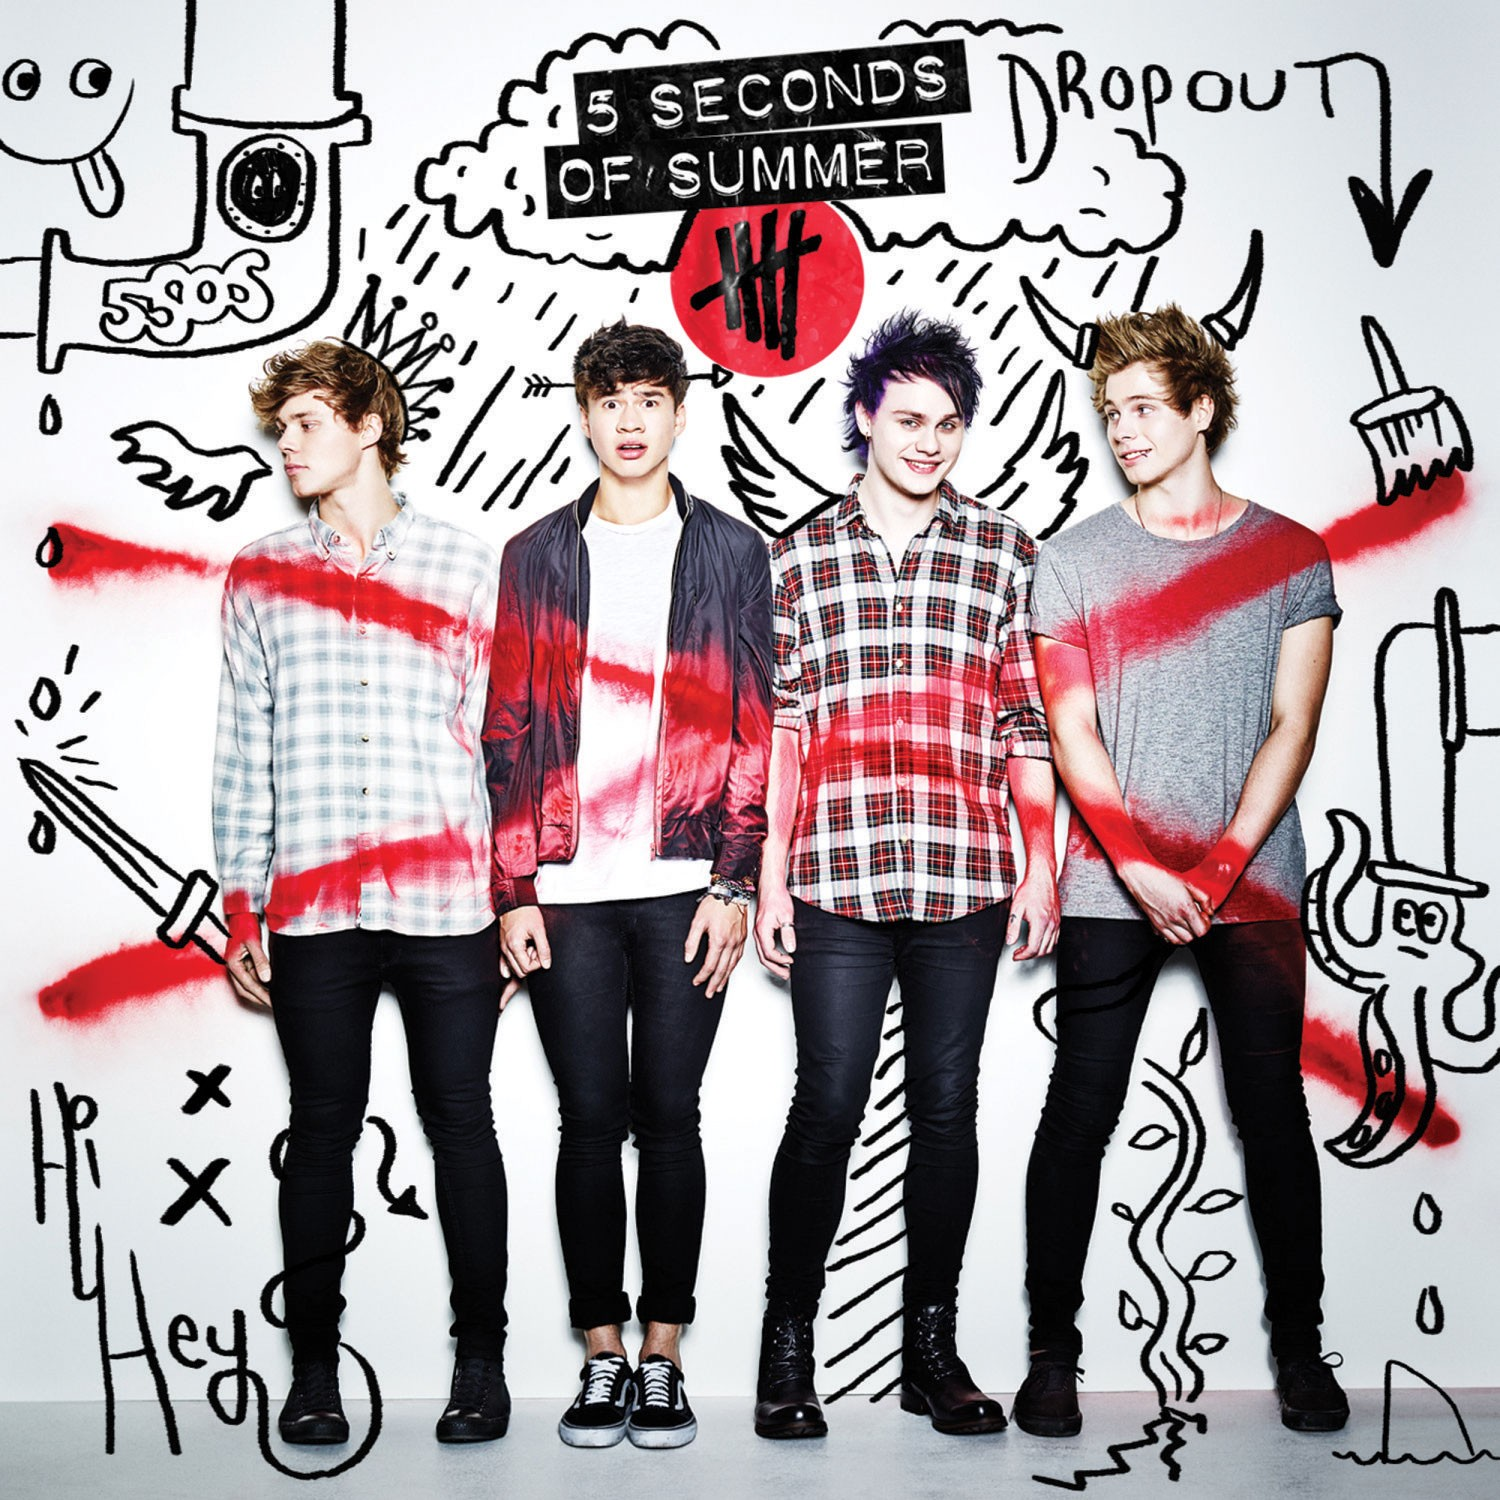 5 Seconds Of Summer - 5 Seconds Of Summer album cover